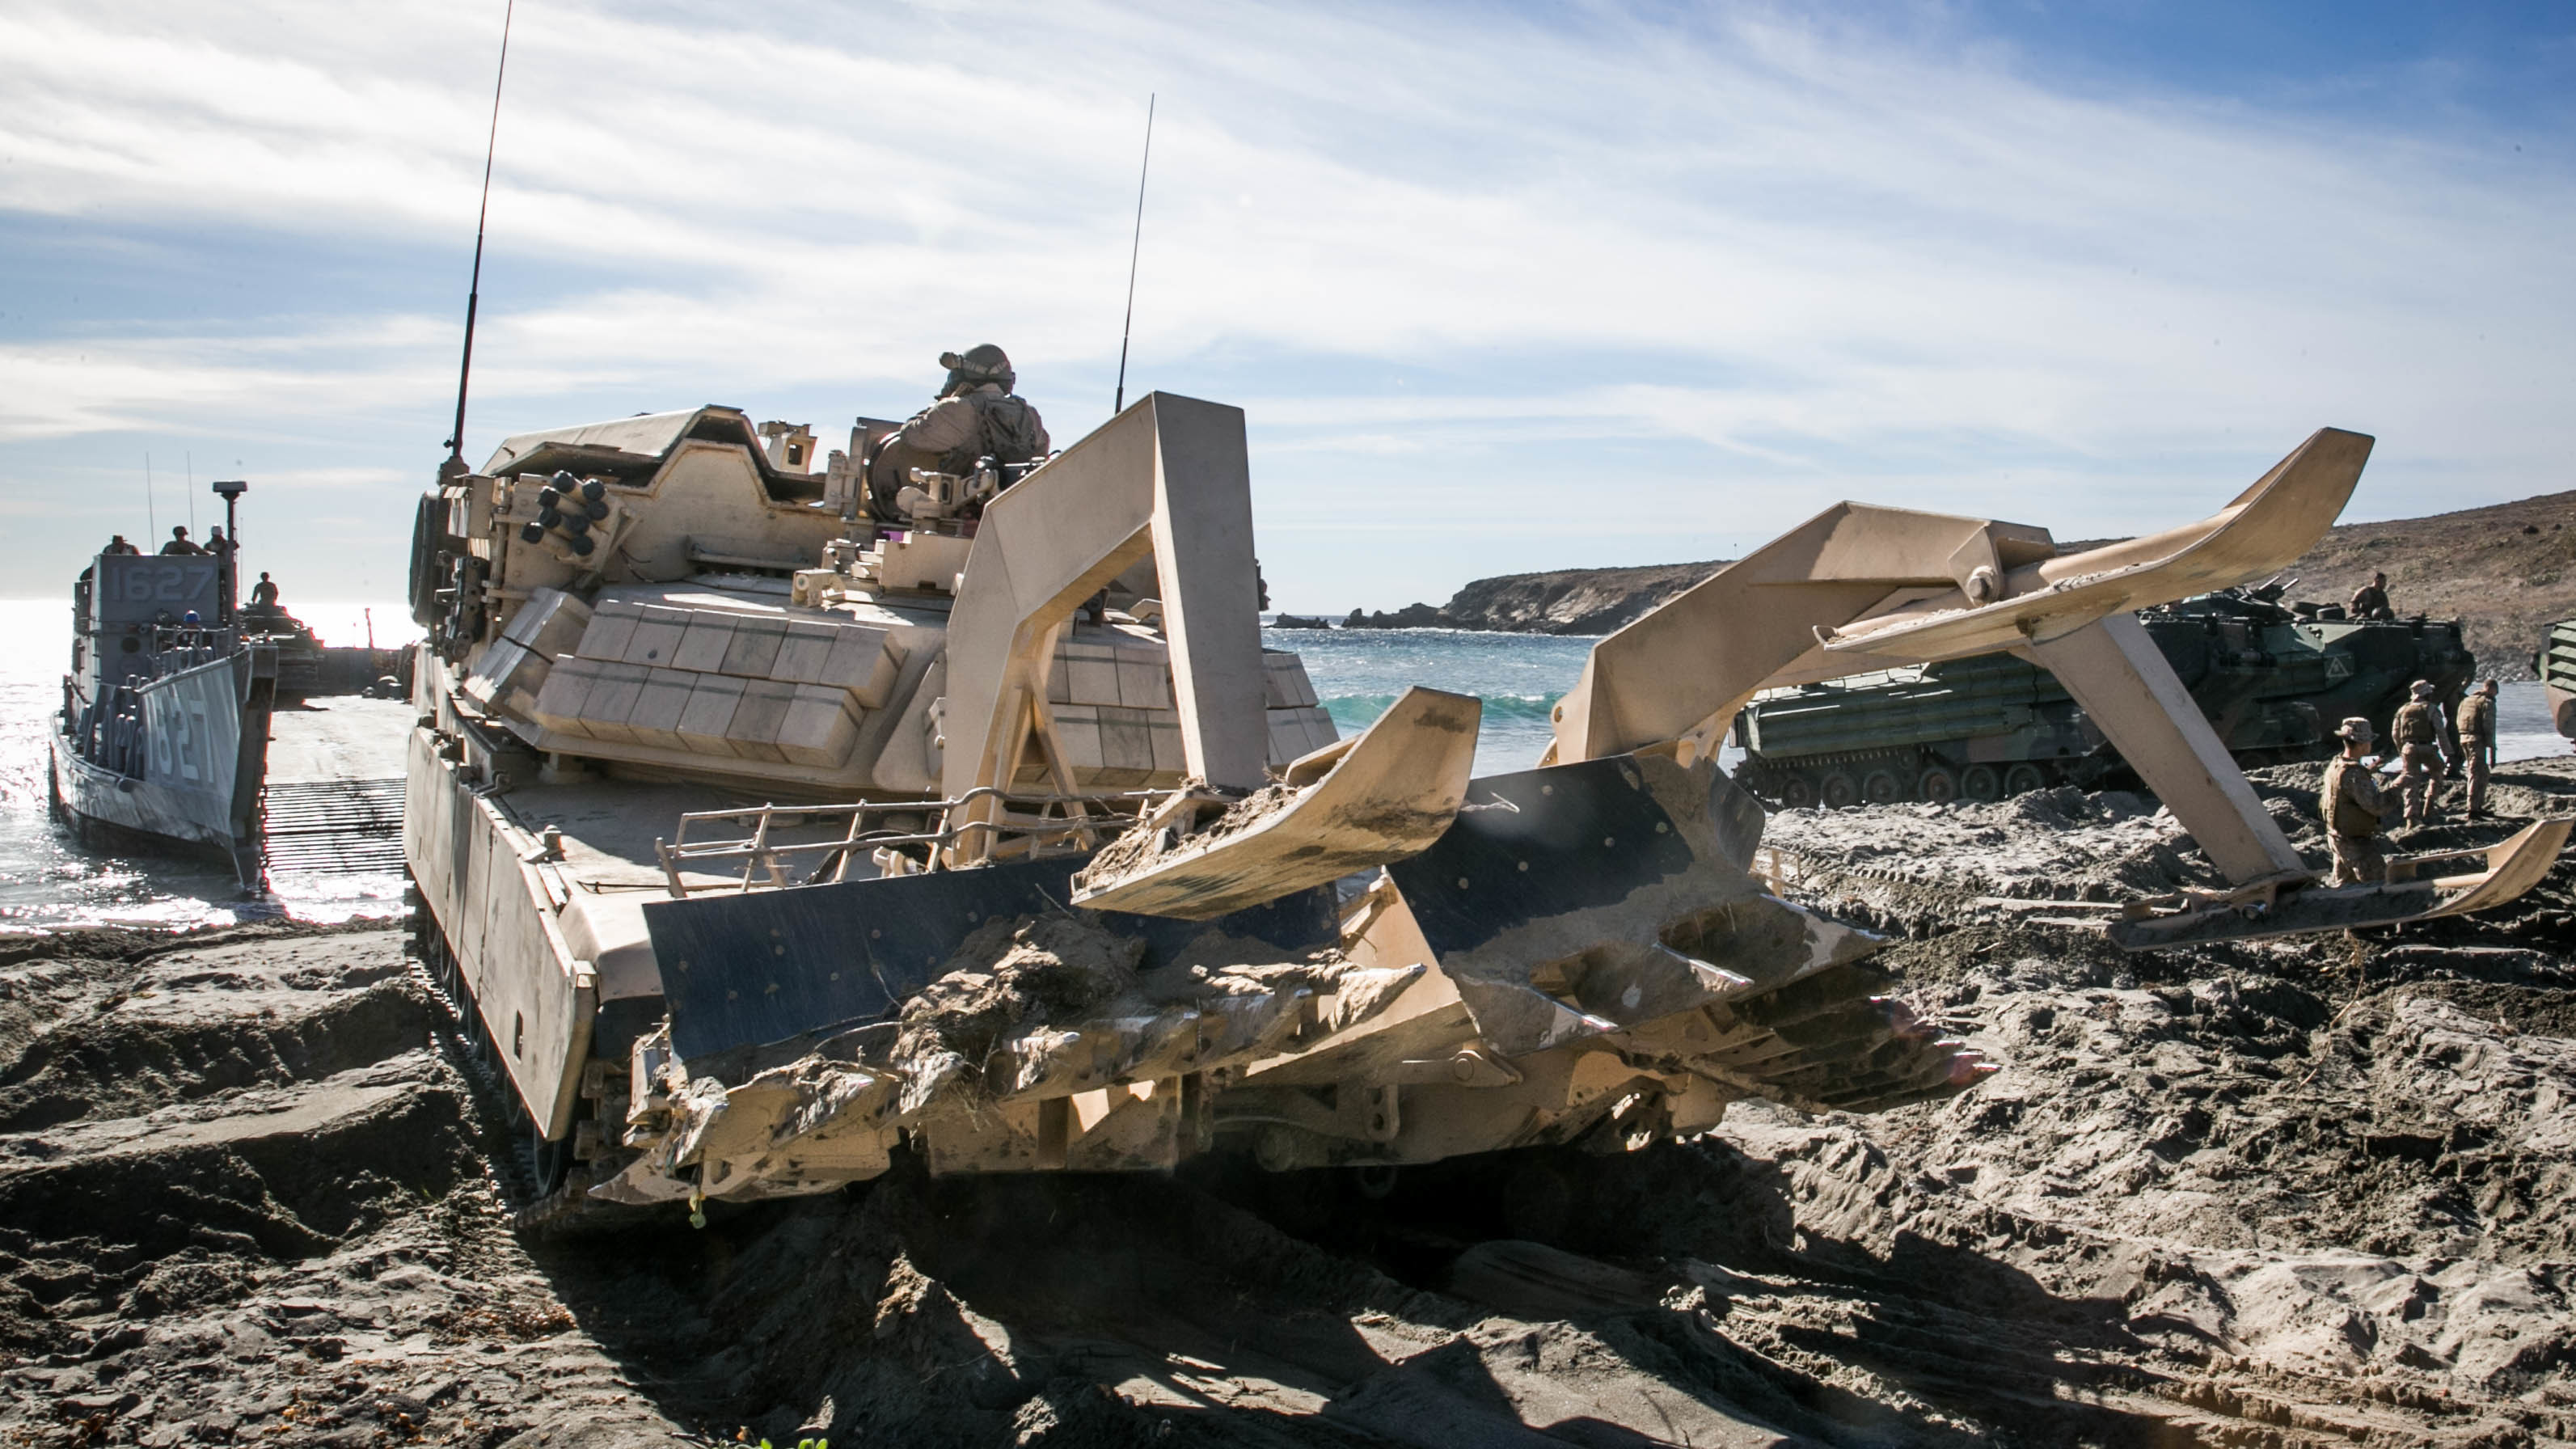 The armor and protuberances from this vehicle look intimidating, but what will make it all work are the cameras that allow Marines inside the vehicle to operate while safely ensconced in the armored interior. (Rhita Daniel, USMC)